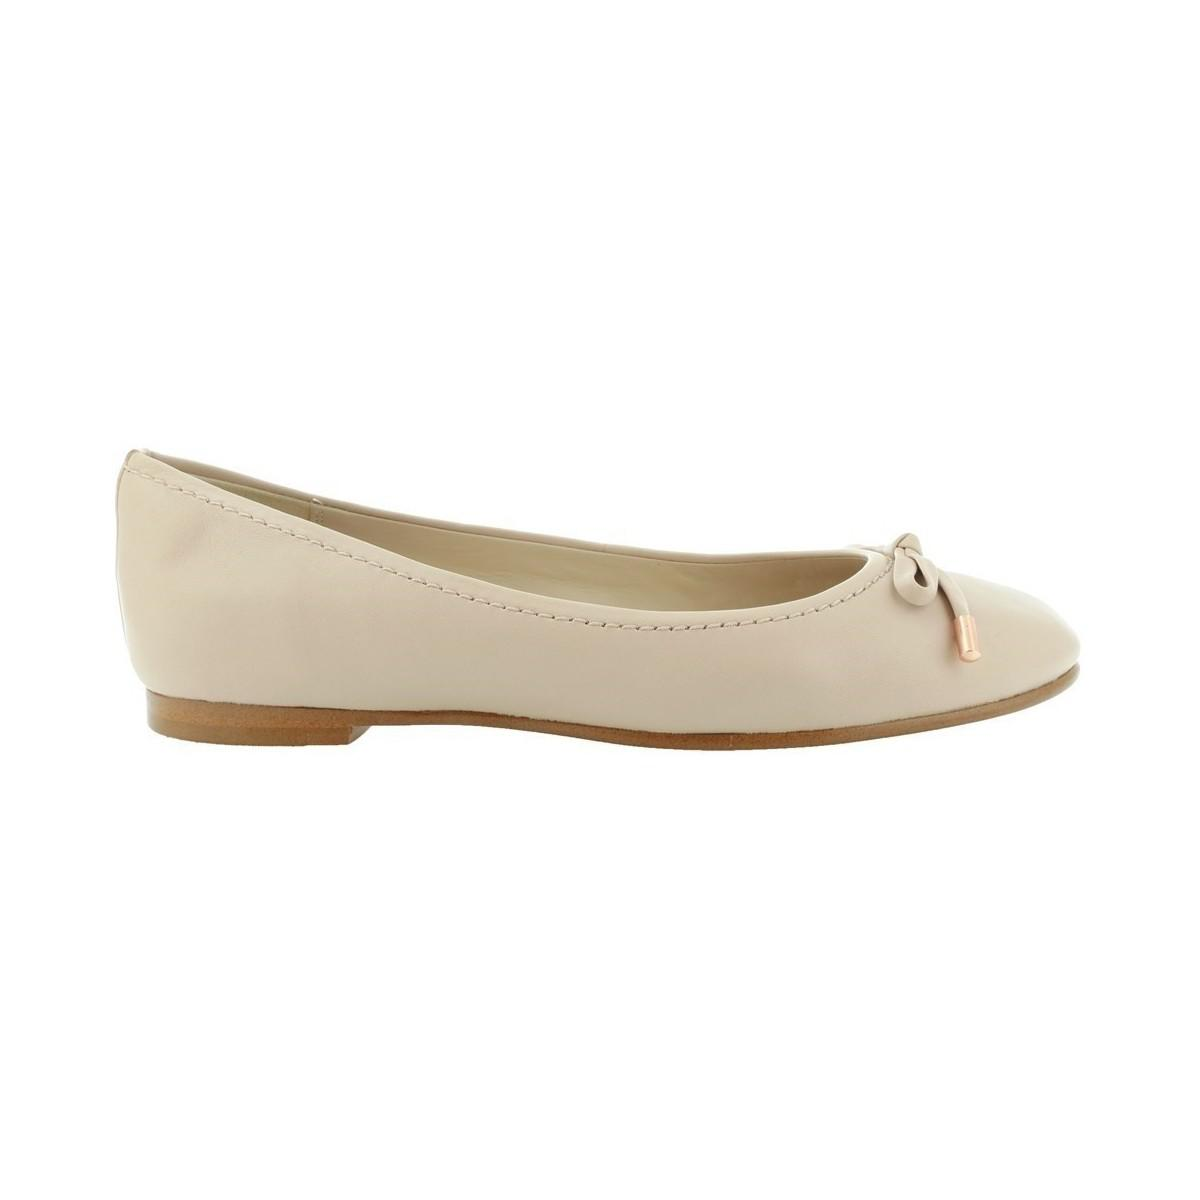 Buy Cheap 2018 Newest Clarks Grace Lily women's Shoes (Pumps / Ballerinas) in Clearance Largest Supplier Buy Cheap Professional Outlet Hot Sale tTOlXiTnEz